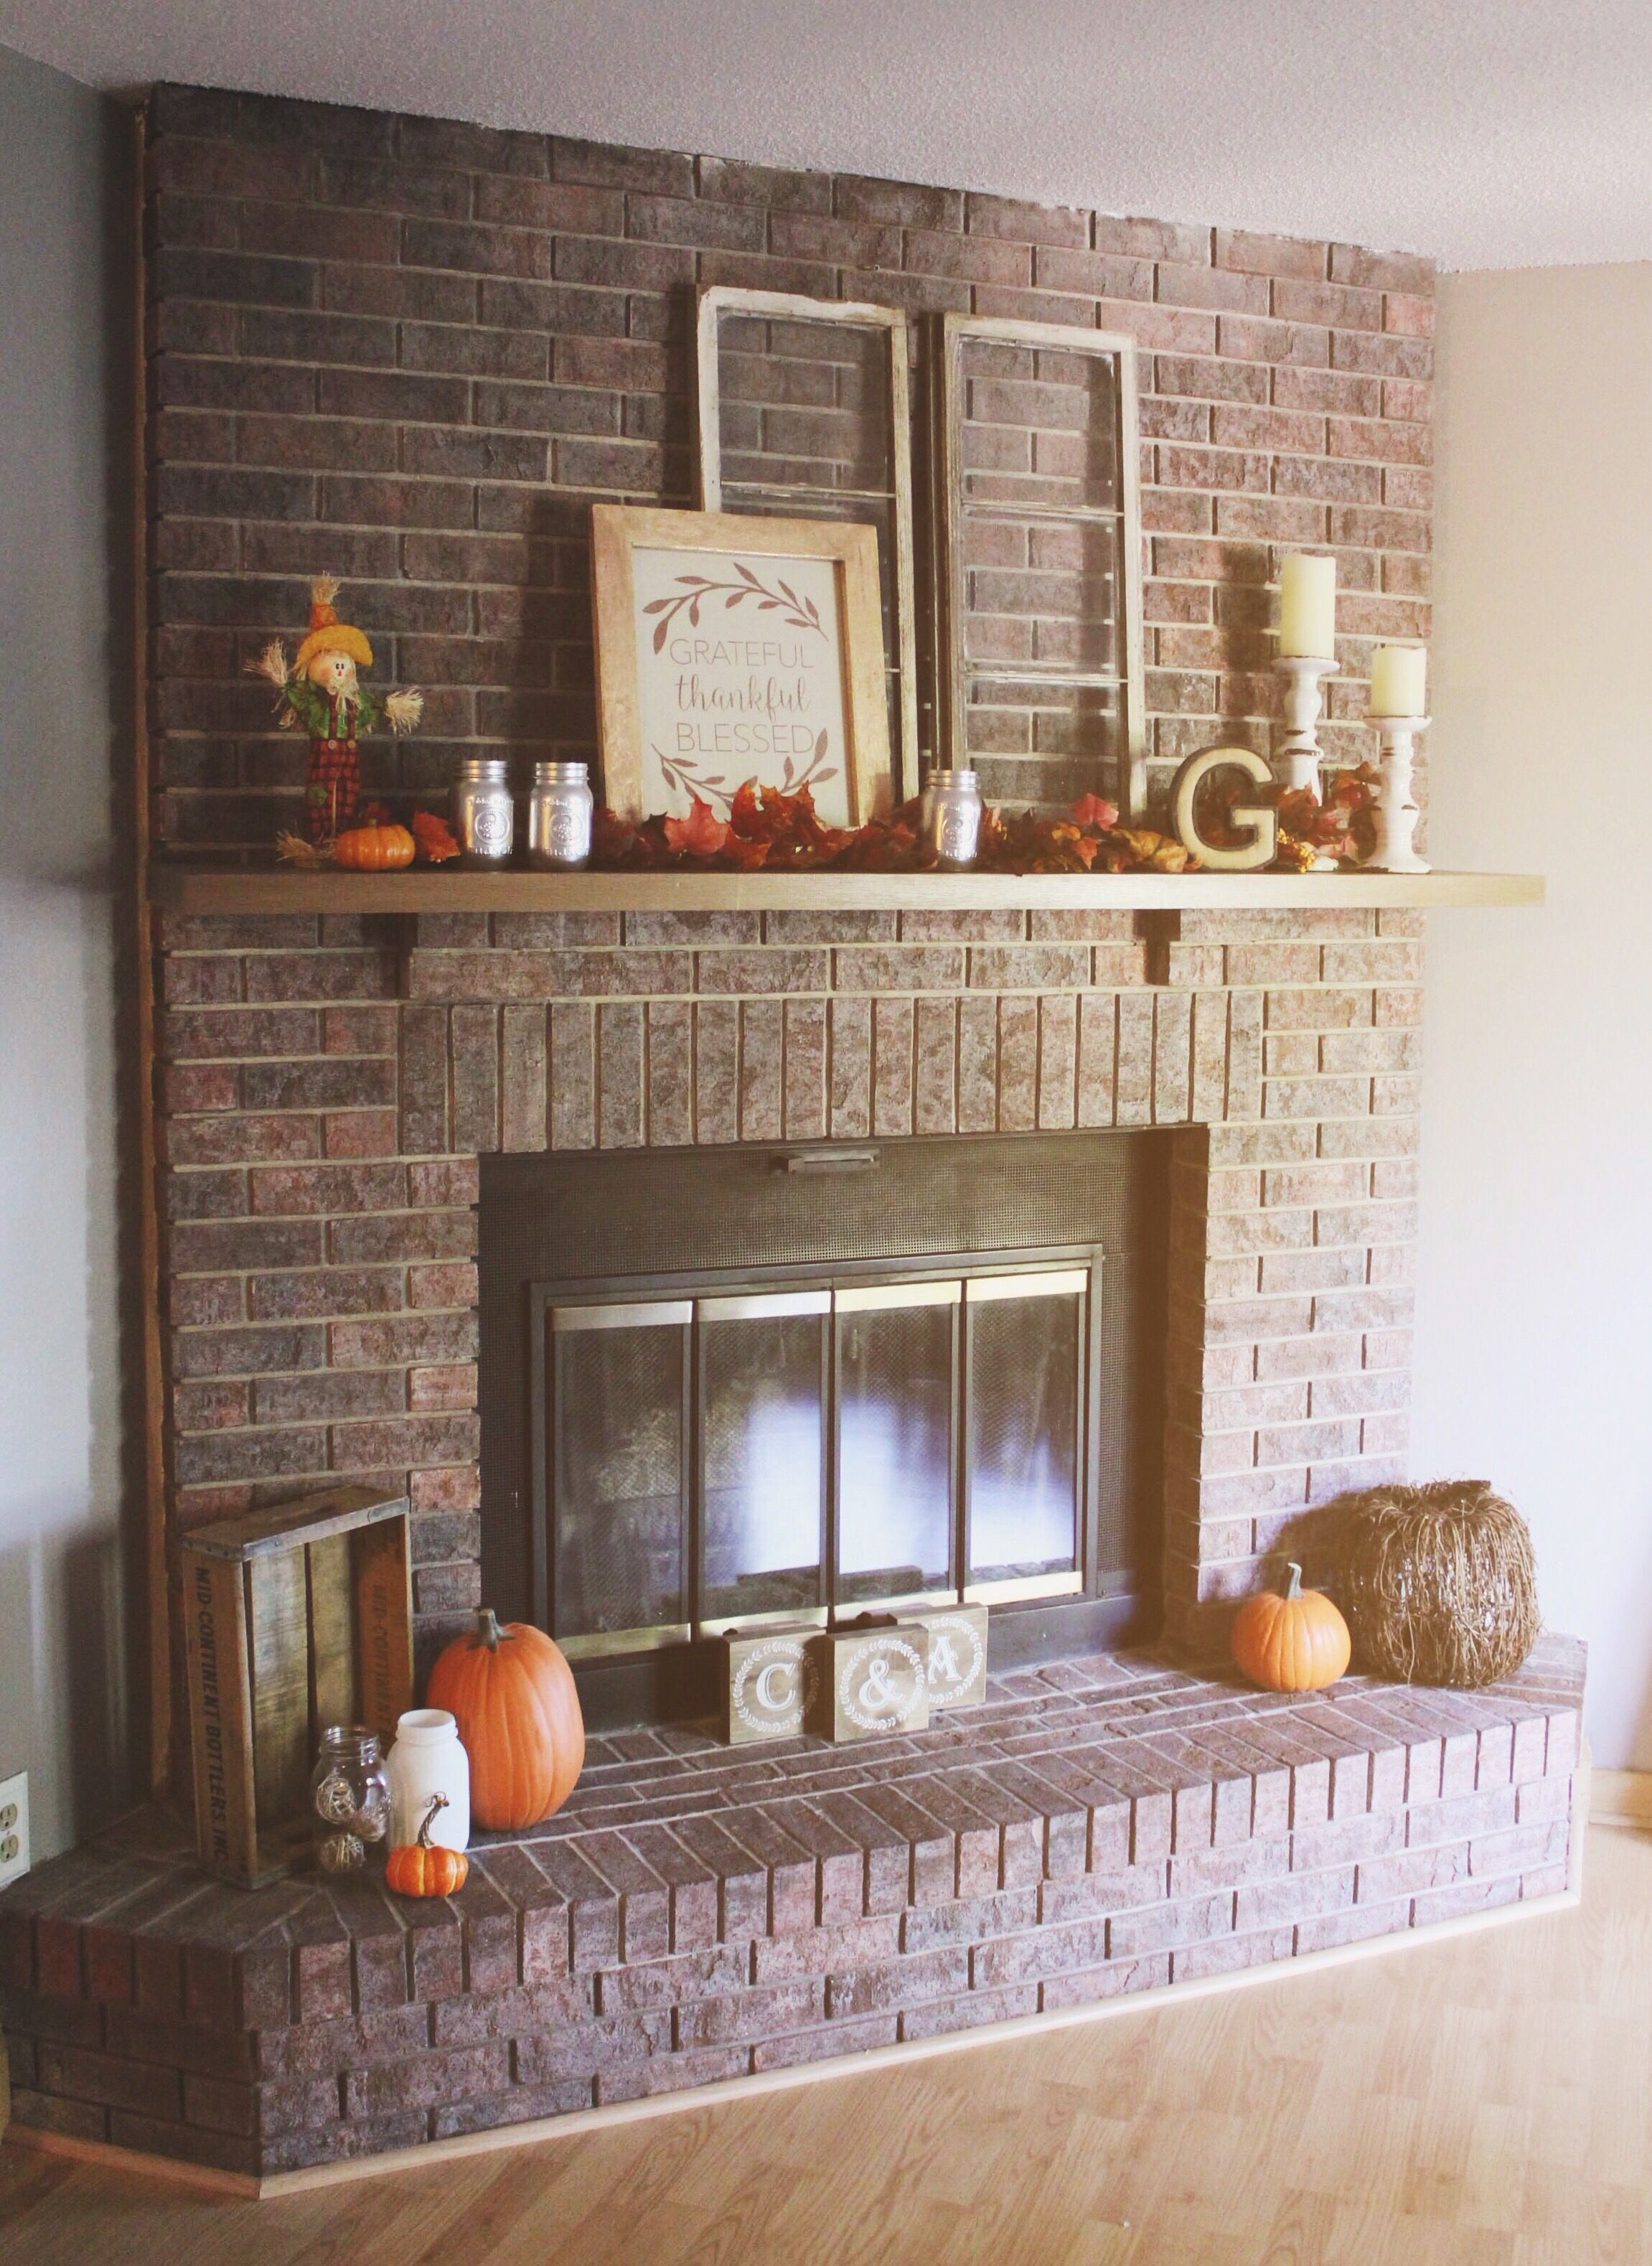 Our cozy rustic chic fall red brick fireplace mantel decor Brick fireplace wall decorating ideas